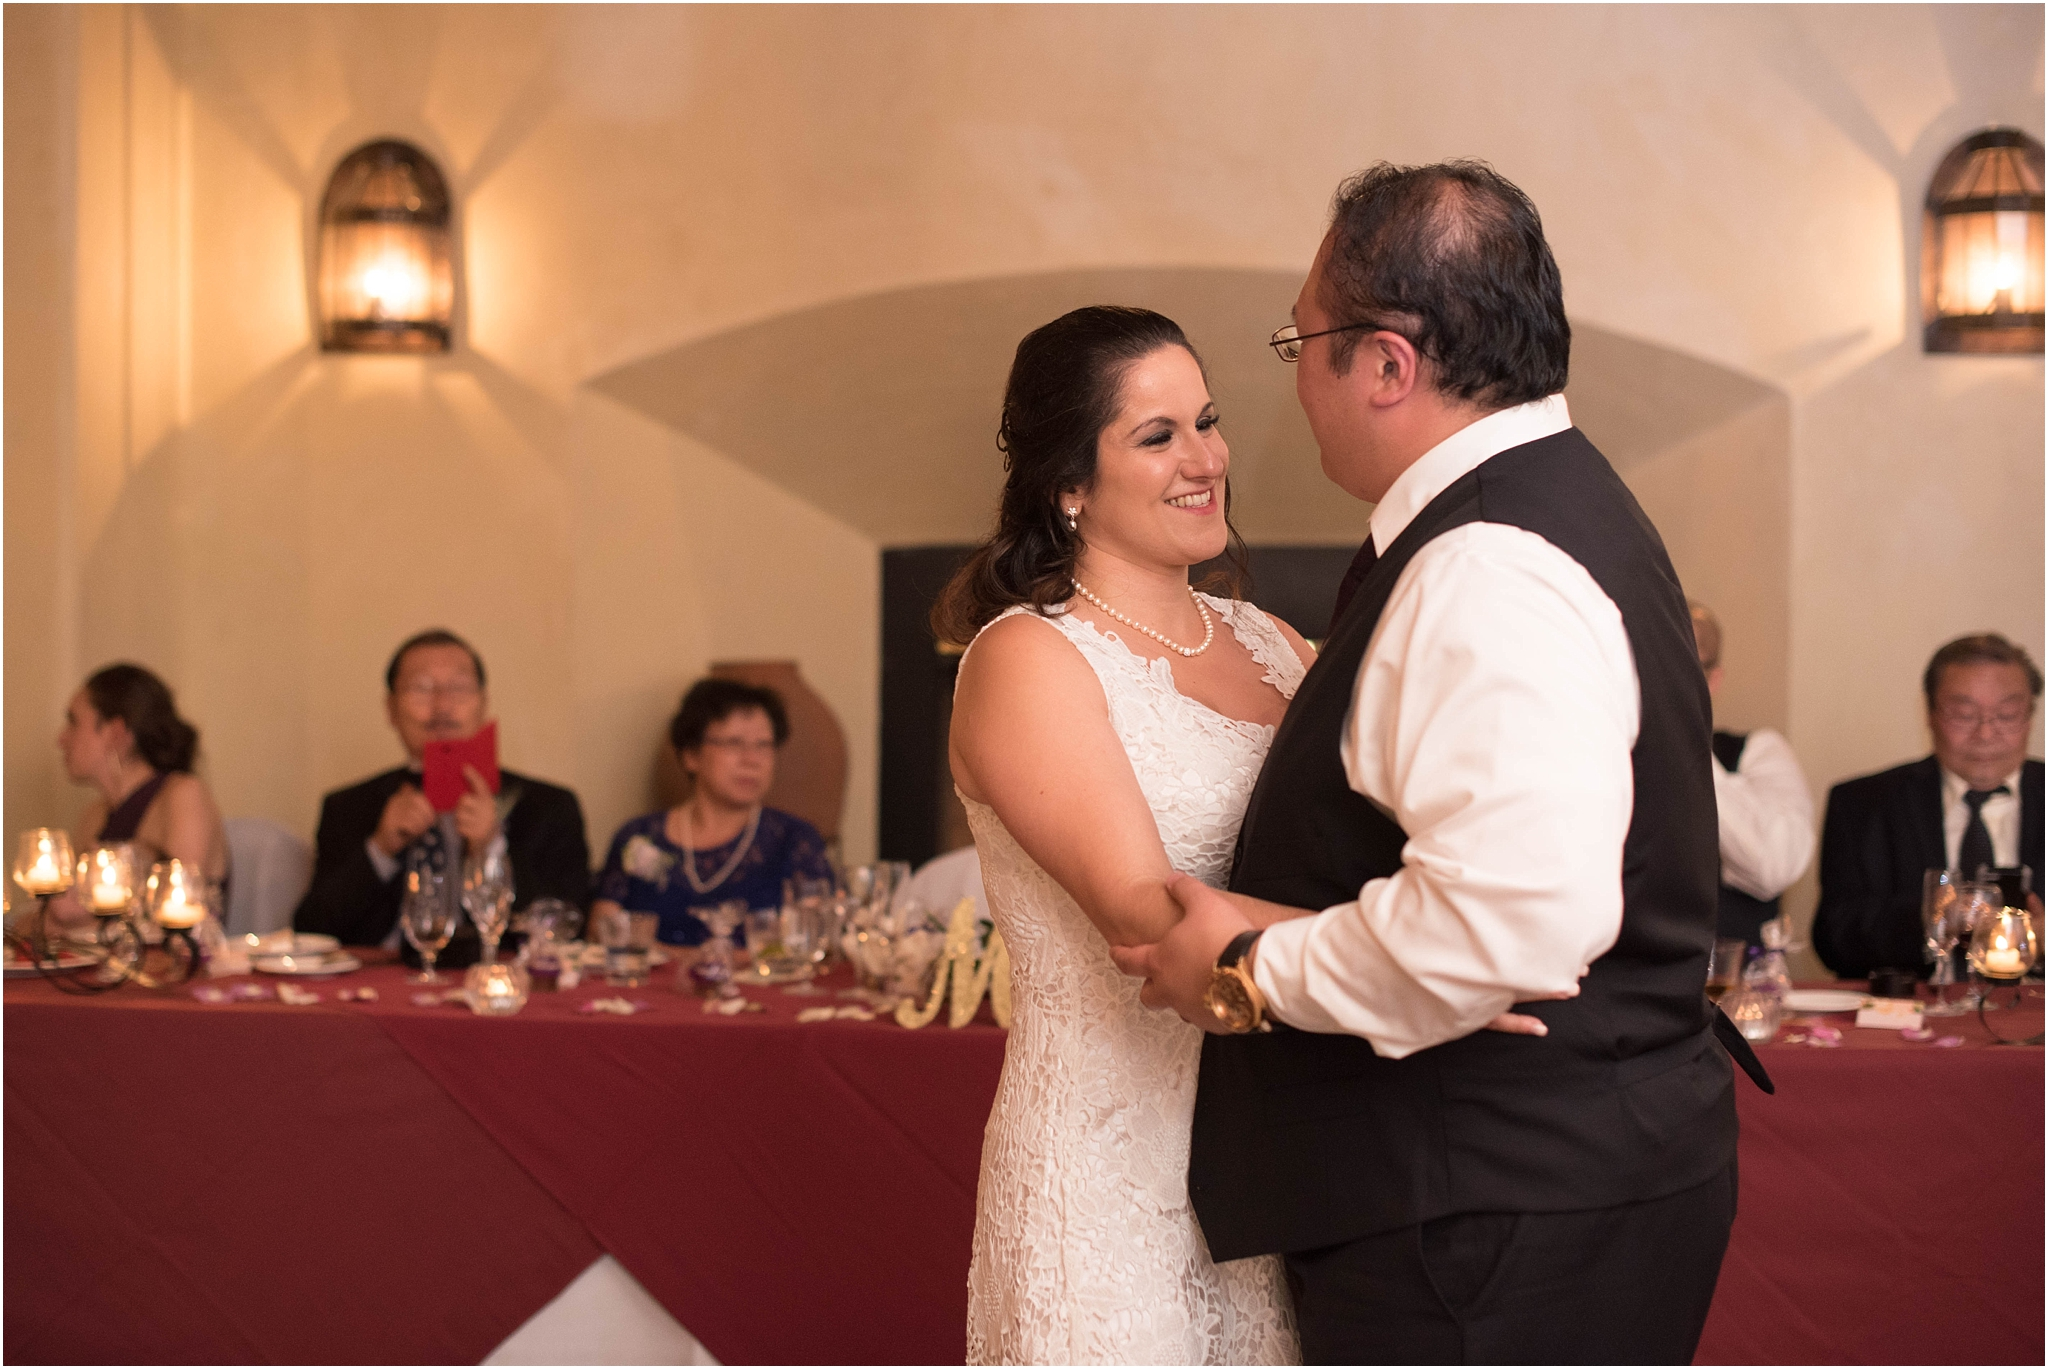 kayla kitts photography - new mexico wedding photographer - albuquerque botanic gardens - hotel albuquerque_0030.jpg